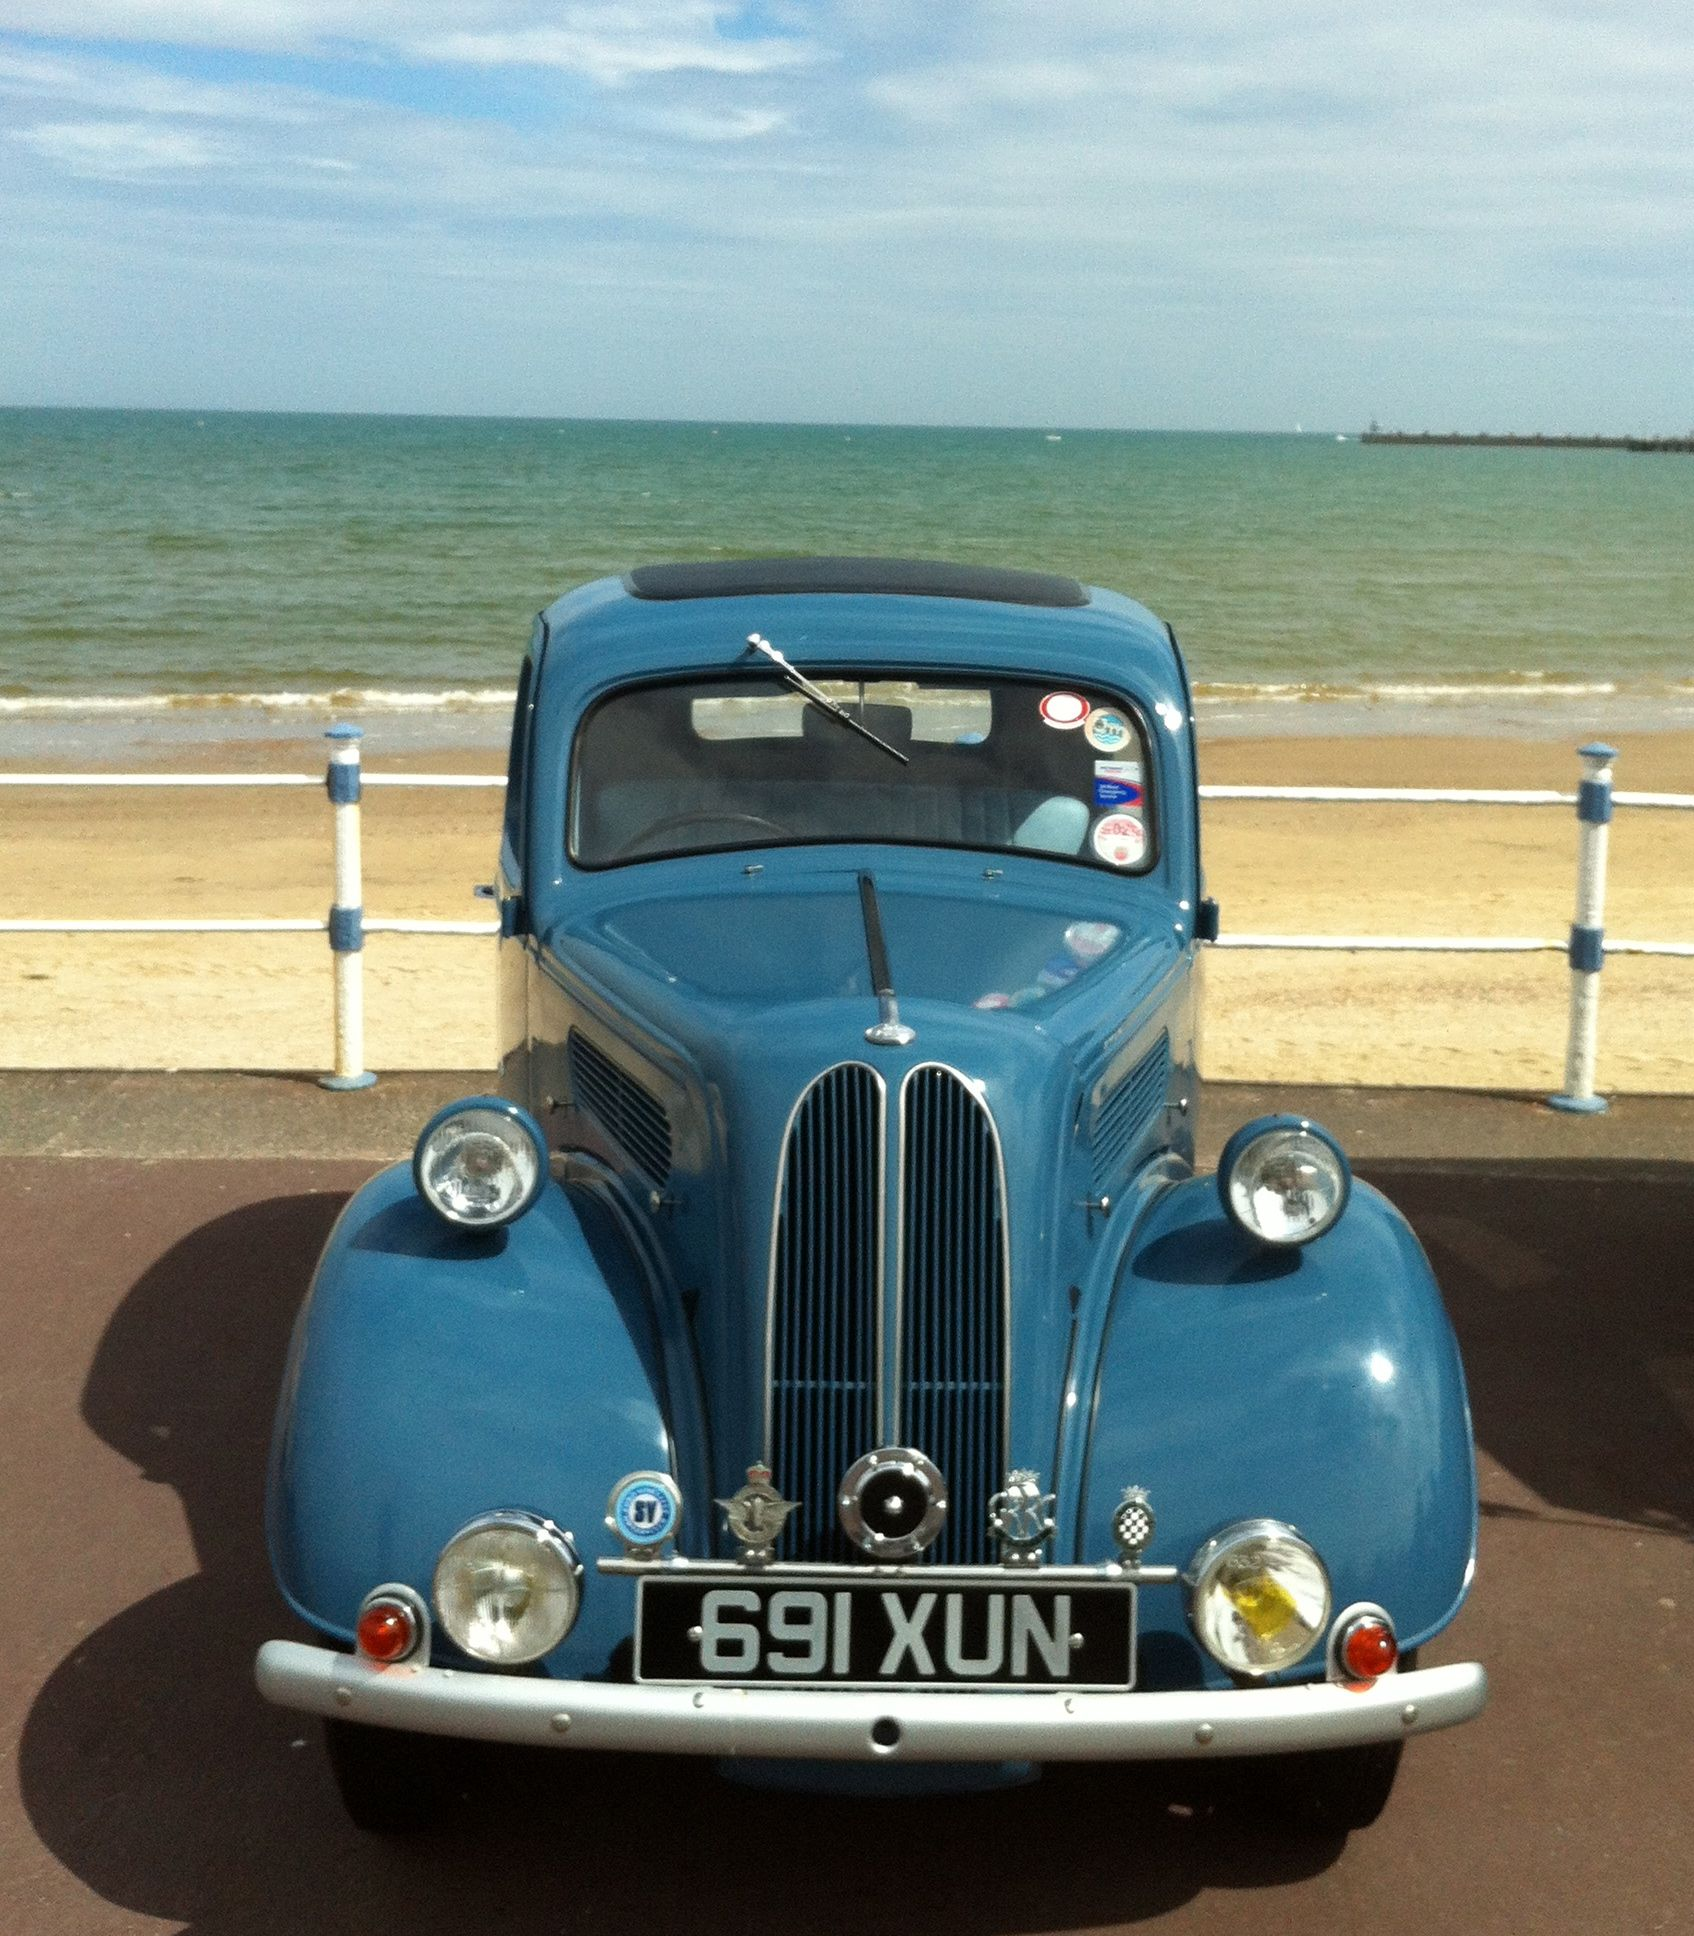 Vintage Cars On The Beach In Weymouth June Holiday